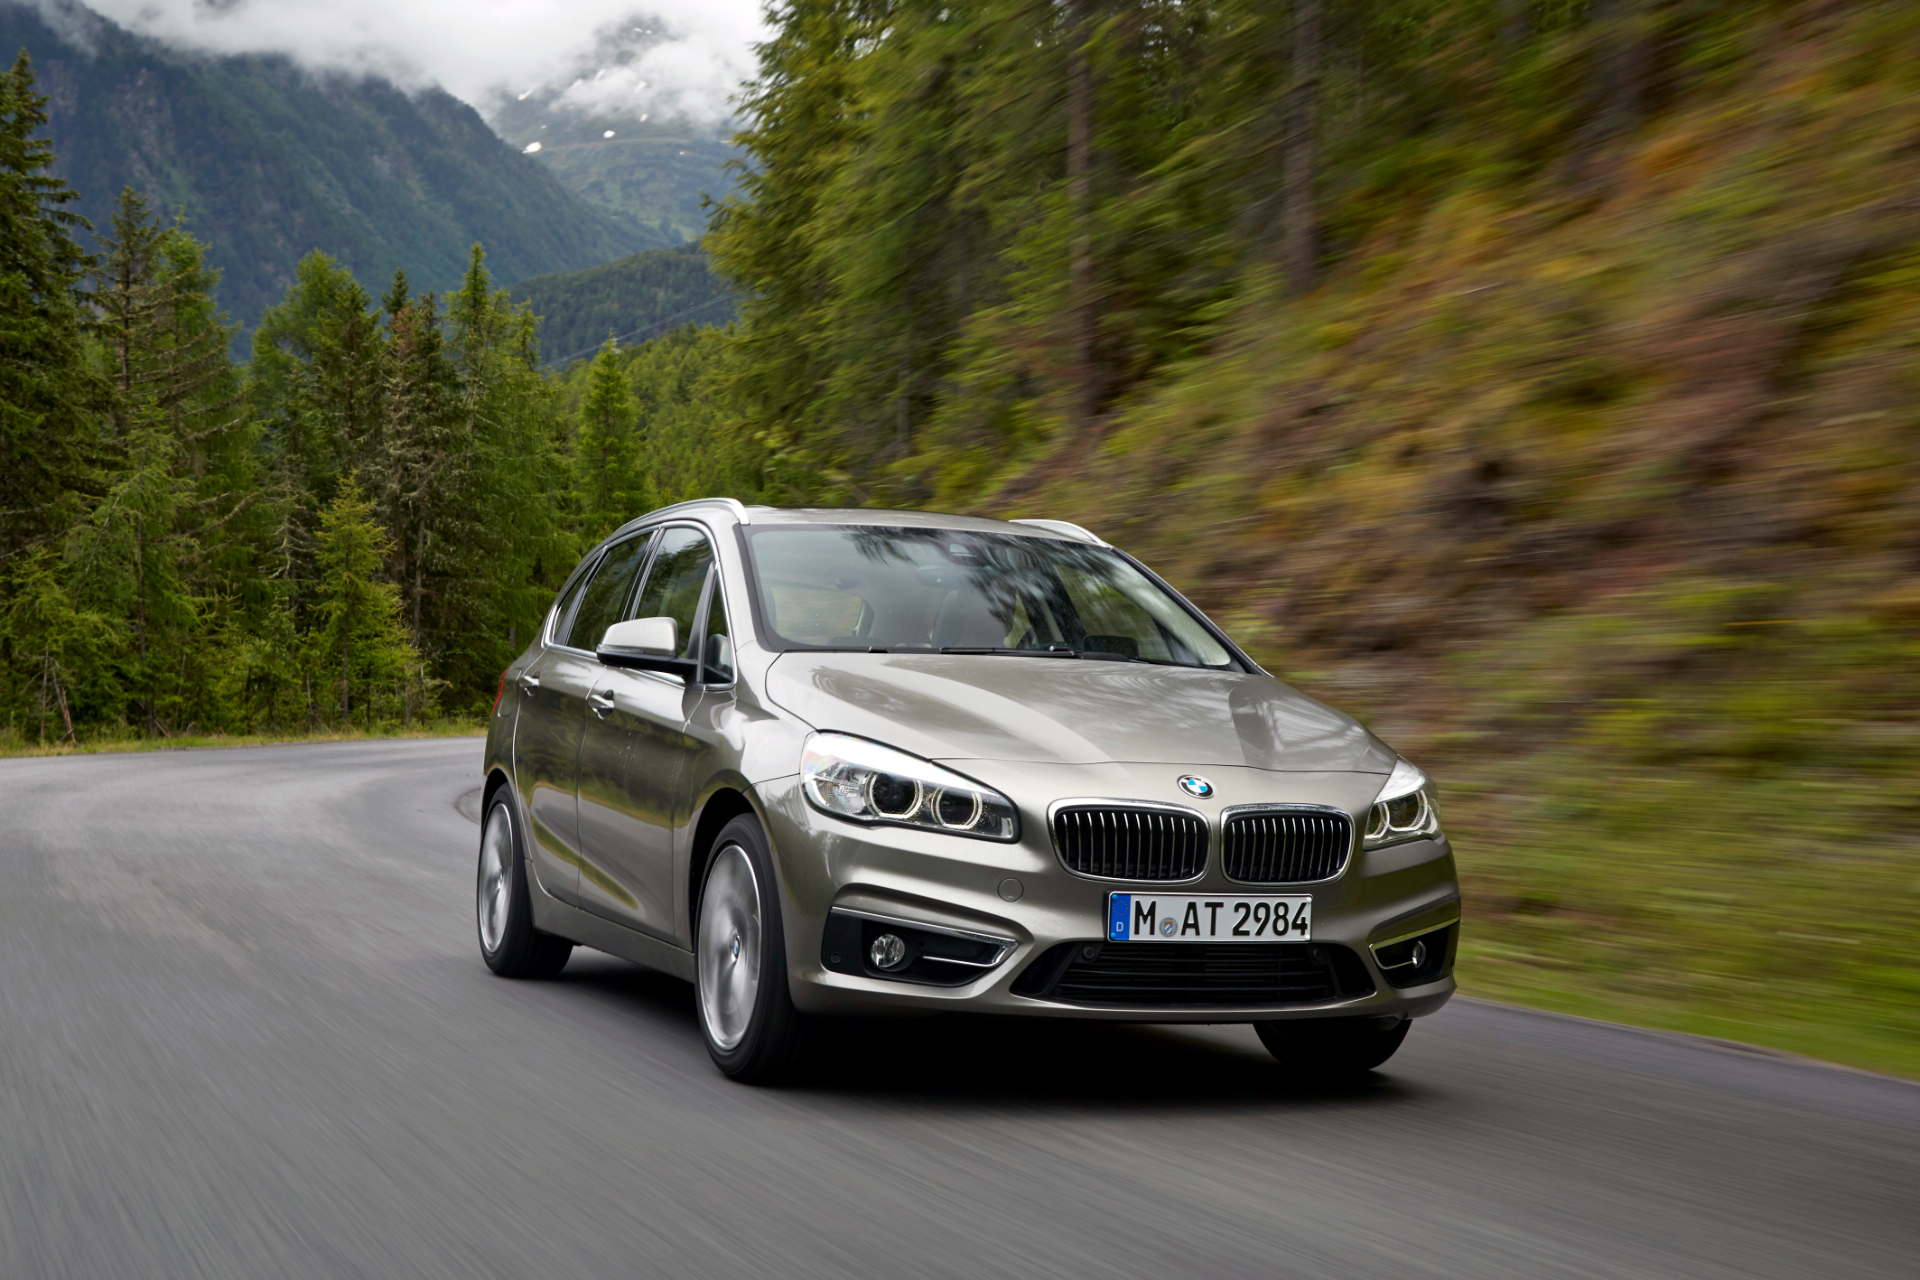 BMW 2 series Active Tourer 216d 2014 photo - 7